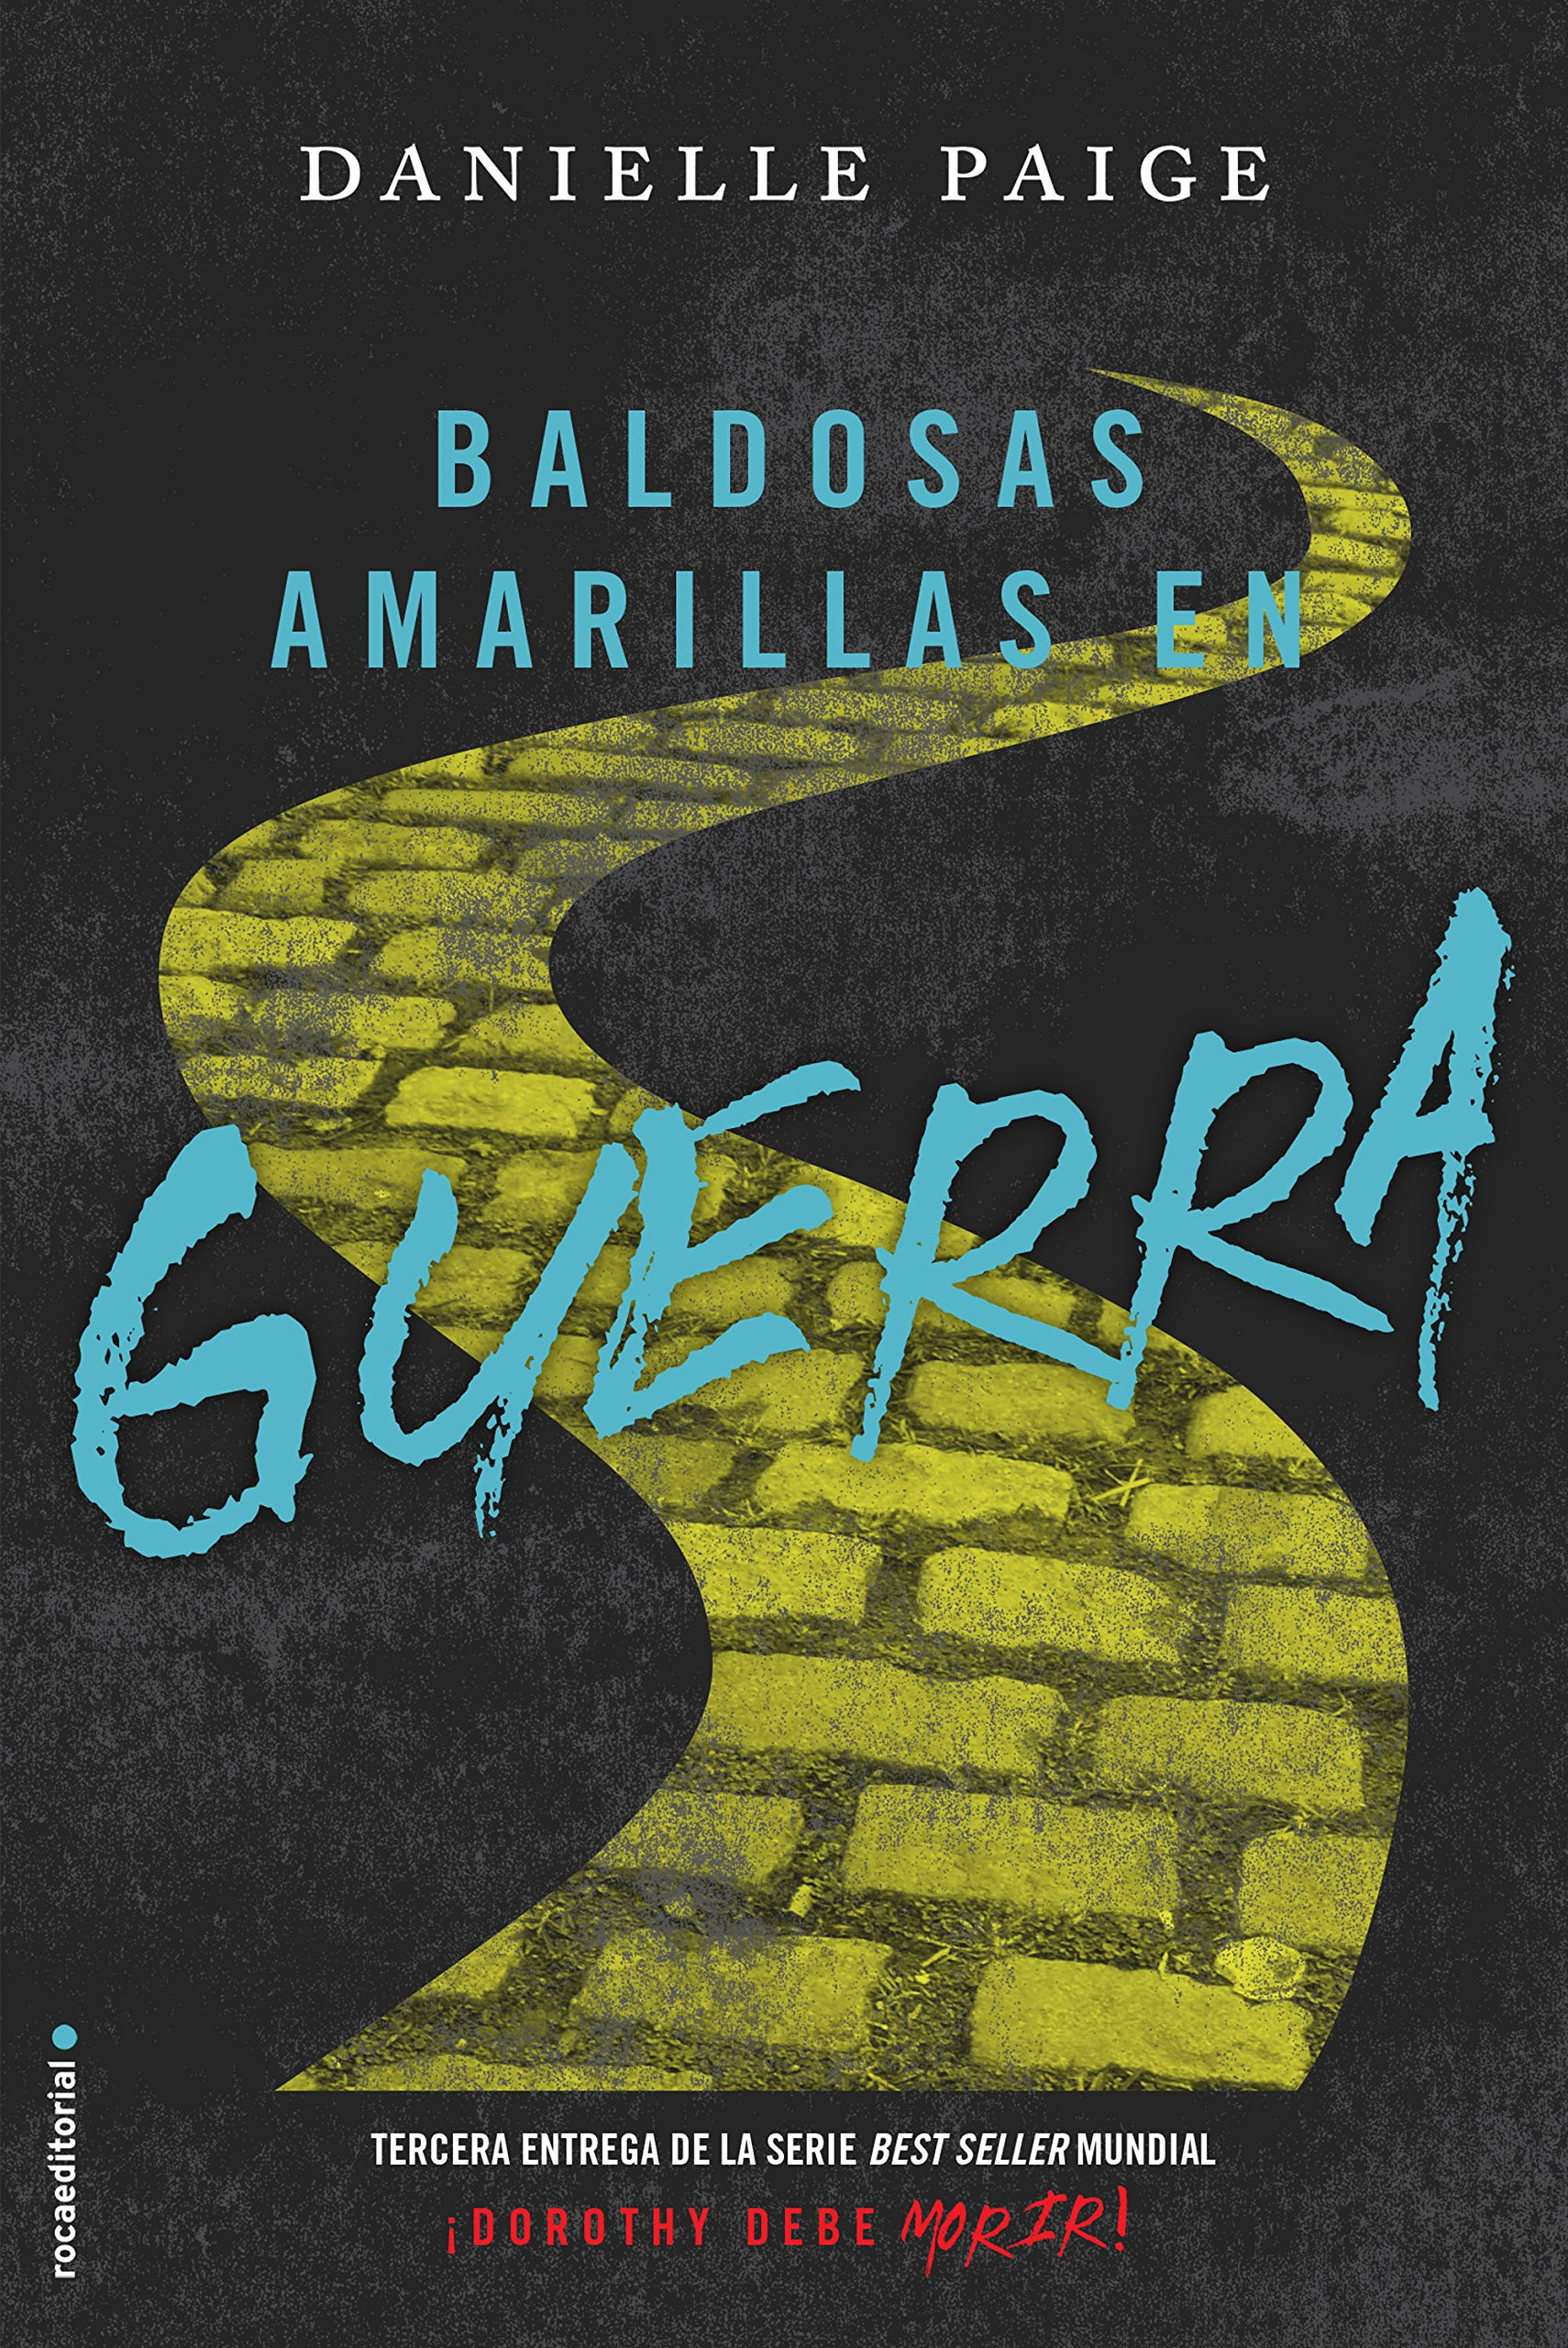 Download Baldosas amarillas en guerra (Dorothy Must Die) (Spanish Edition) ebook